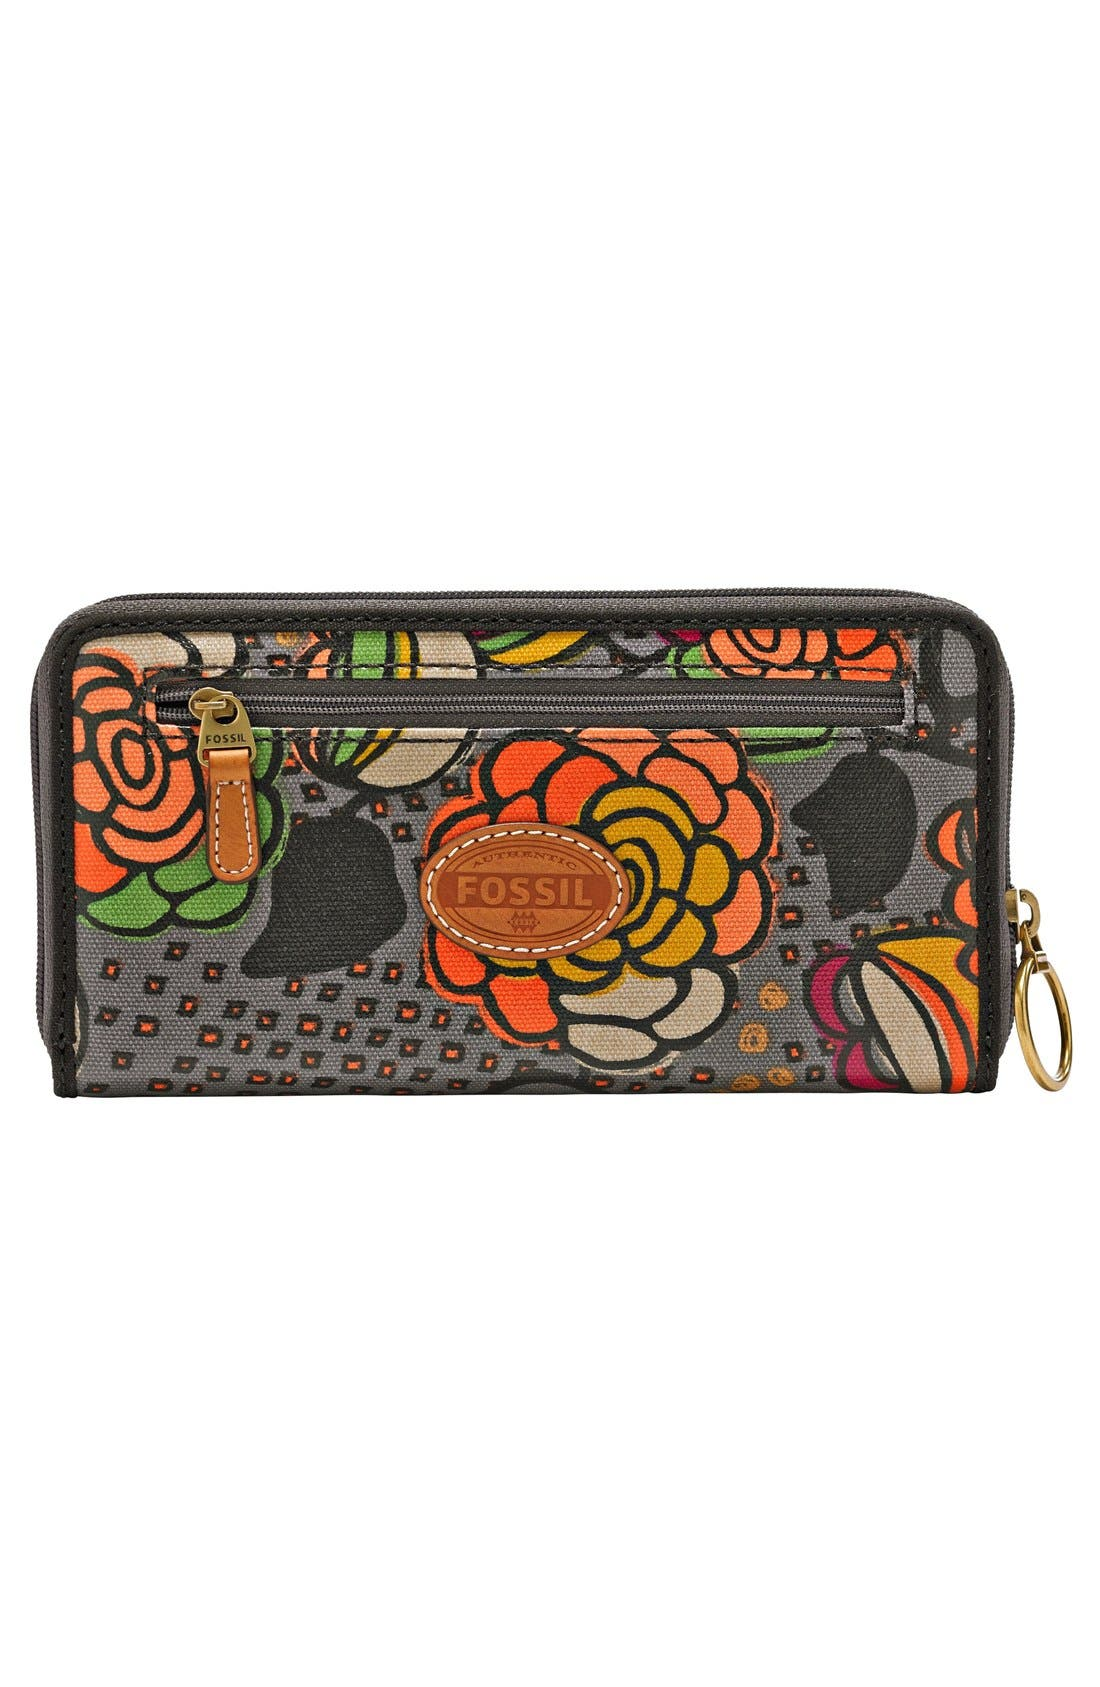 Alternate Image 3  - Fossil 'Key-Per' Print Coated Canvas Zip Around Clutch Wallet